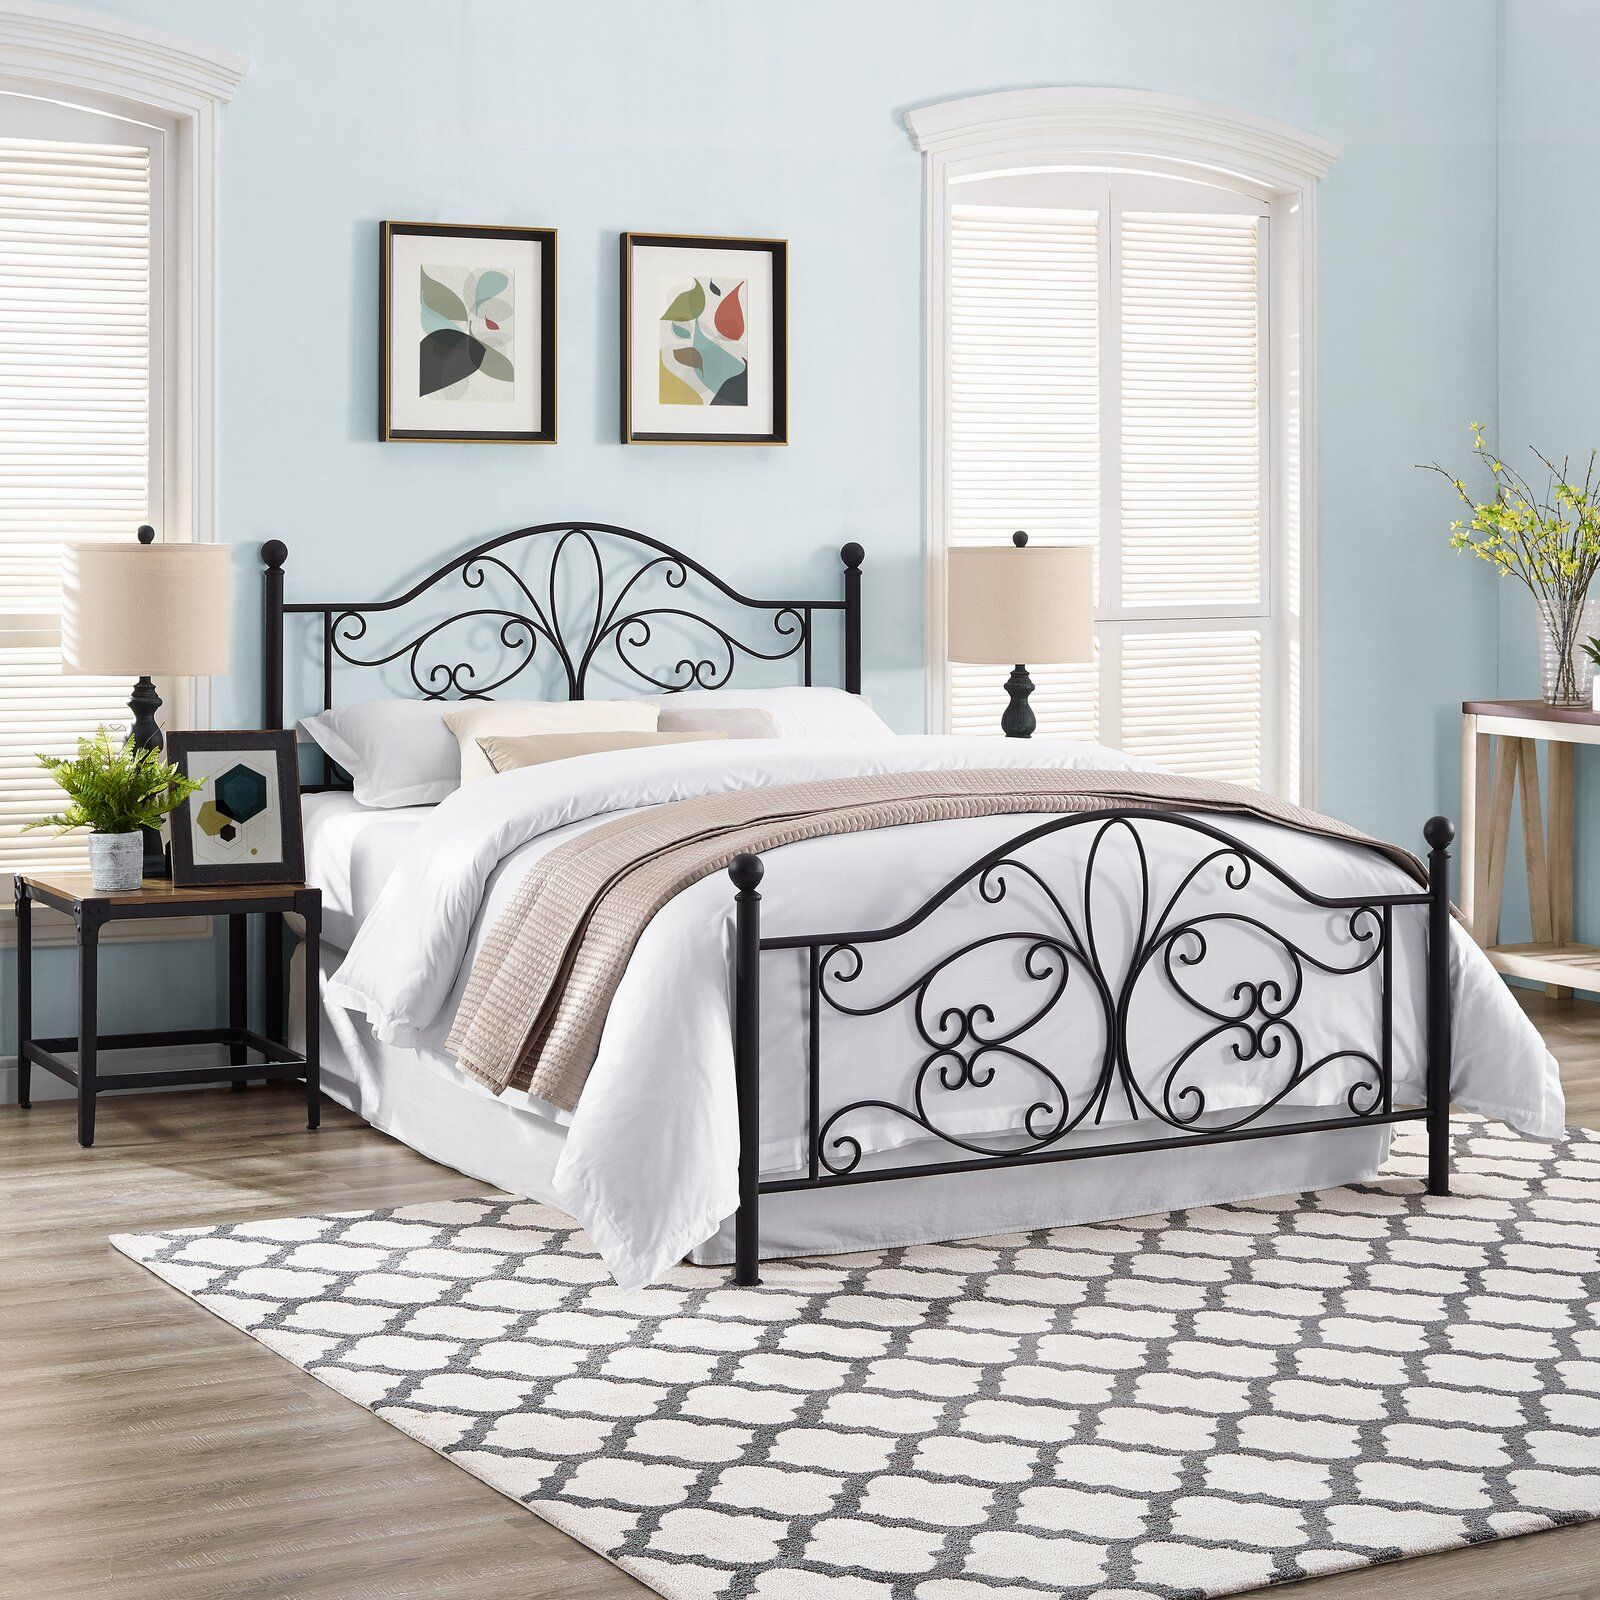 April Open Frame Headboard And Footboard In 2020 Metal Headboard Headboard And Footboard Open Frame Headboard